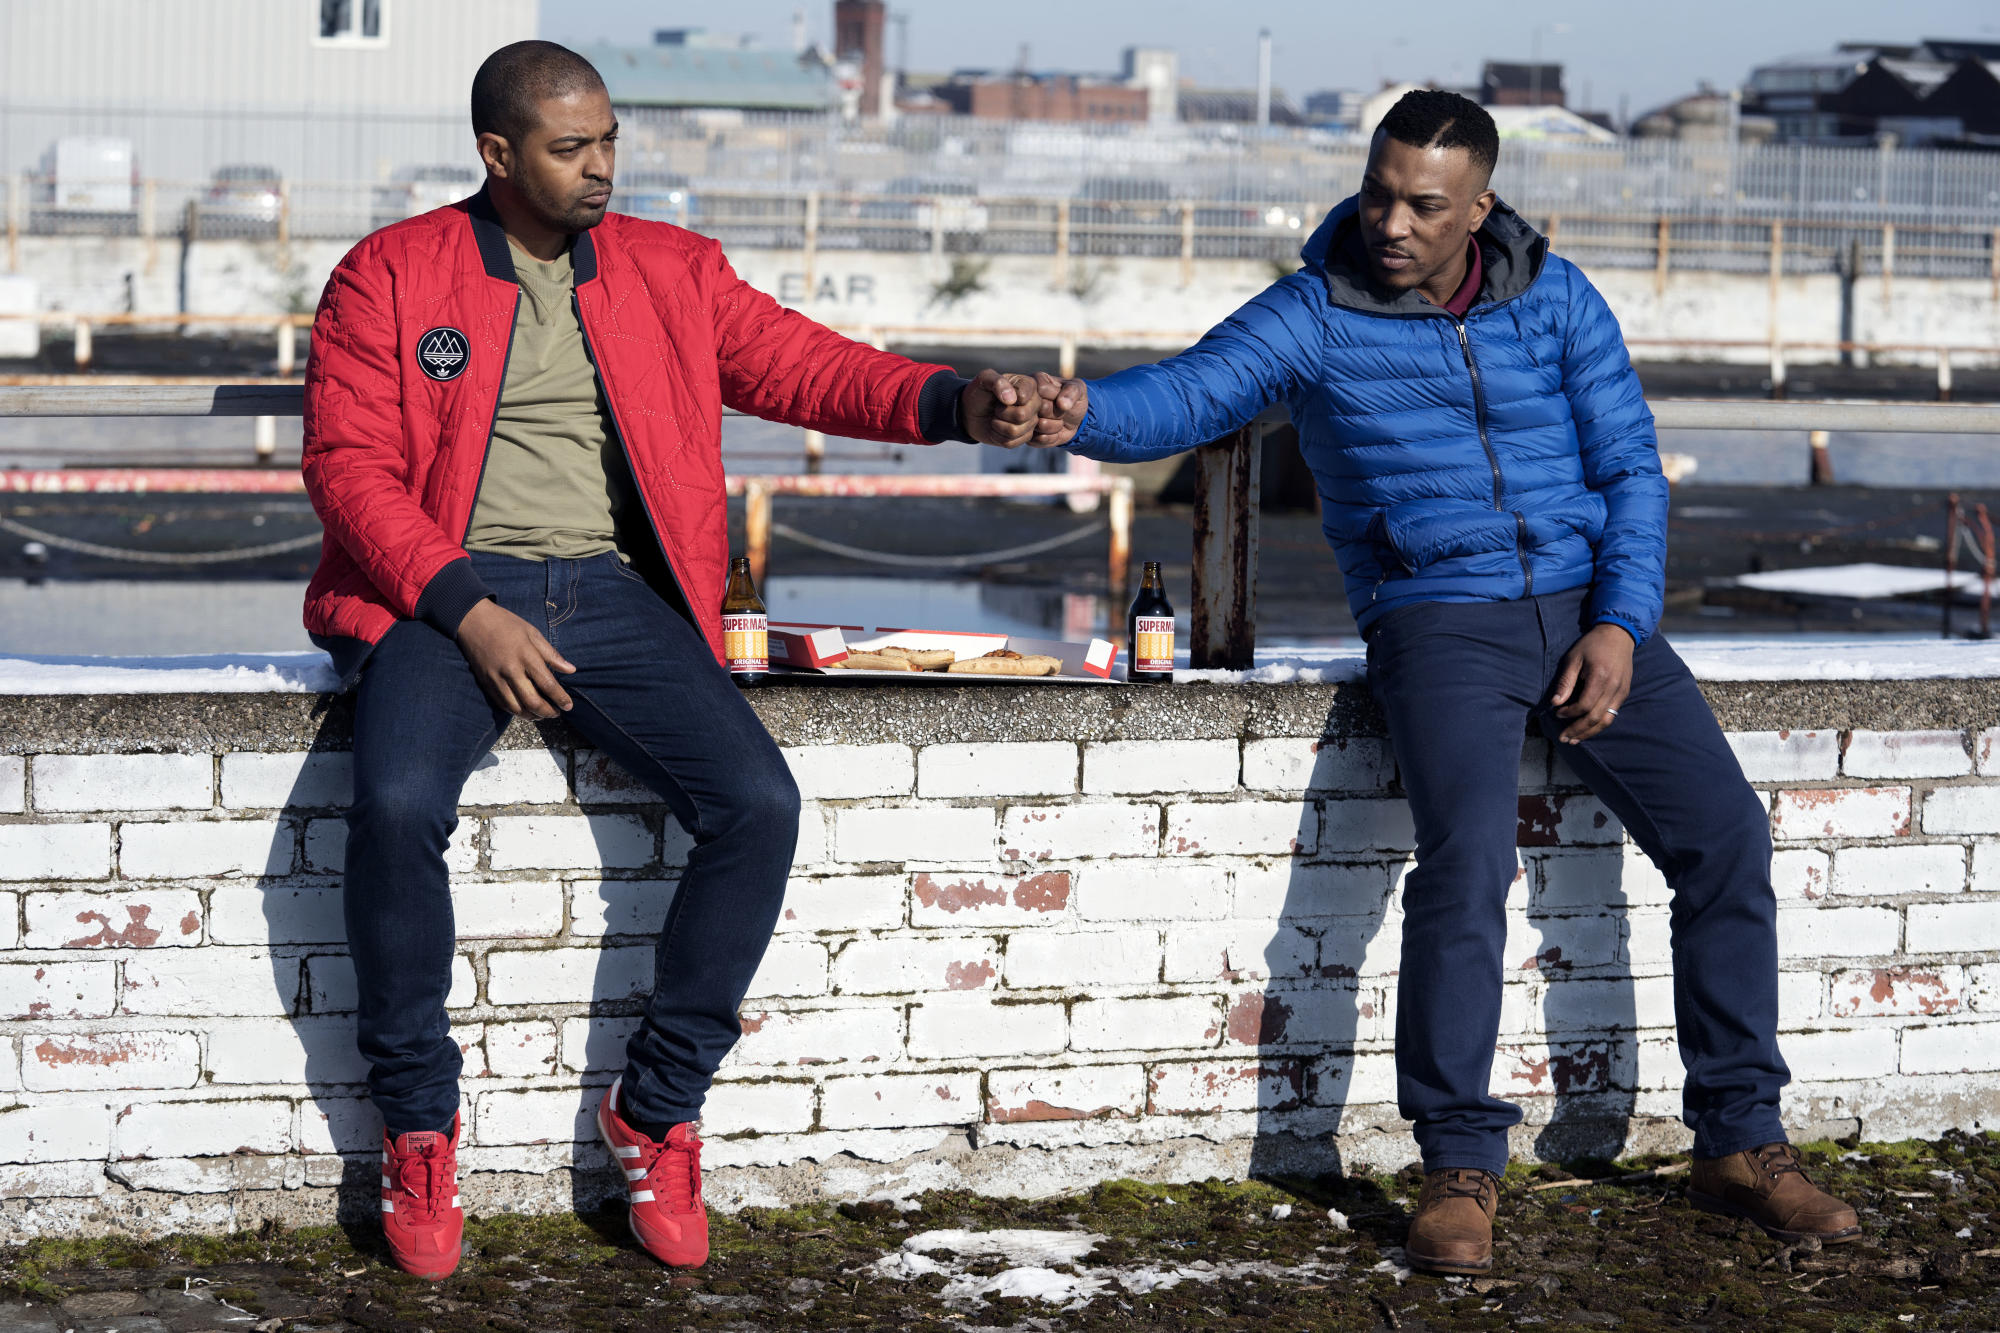 The CW Pulls 'Bulletproof' From Streaming Services After Noel Clarke Misconduct Allegations